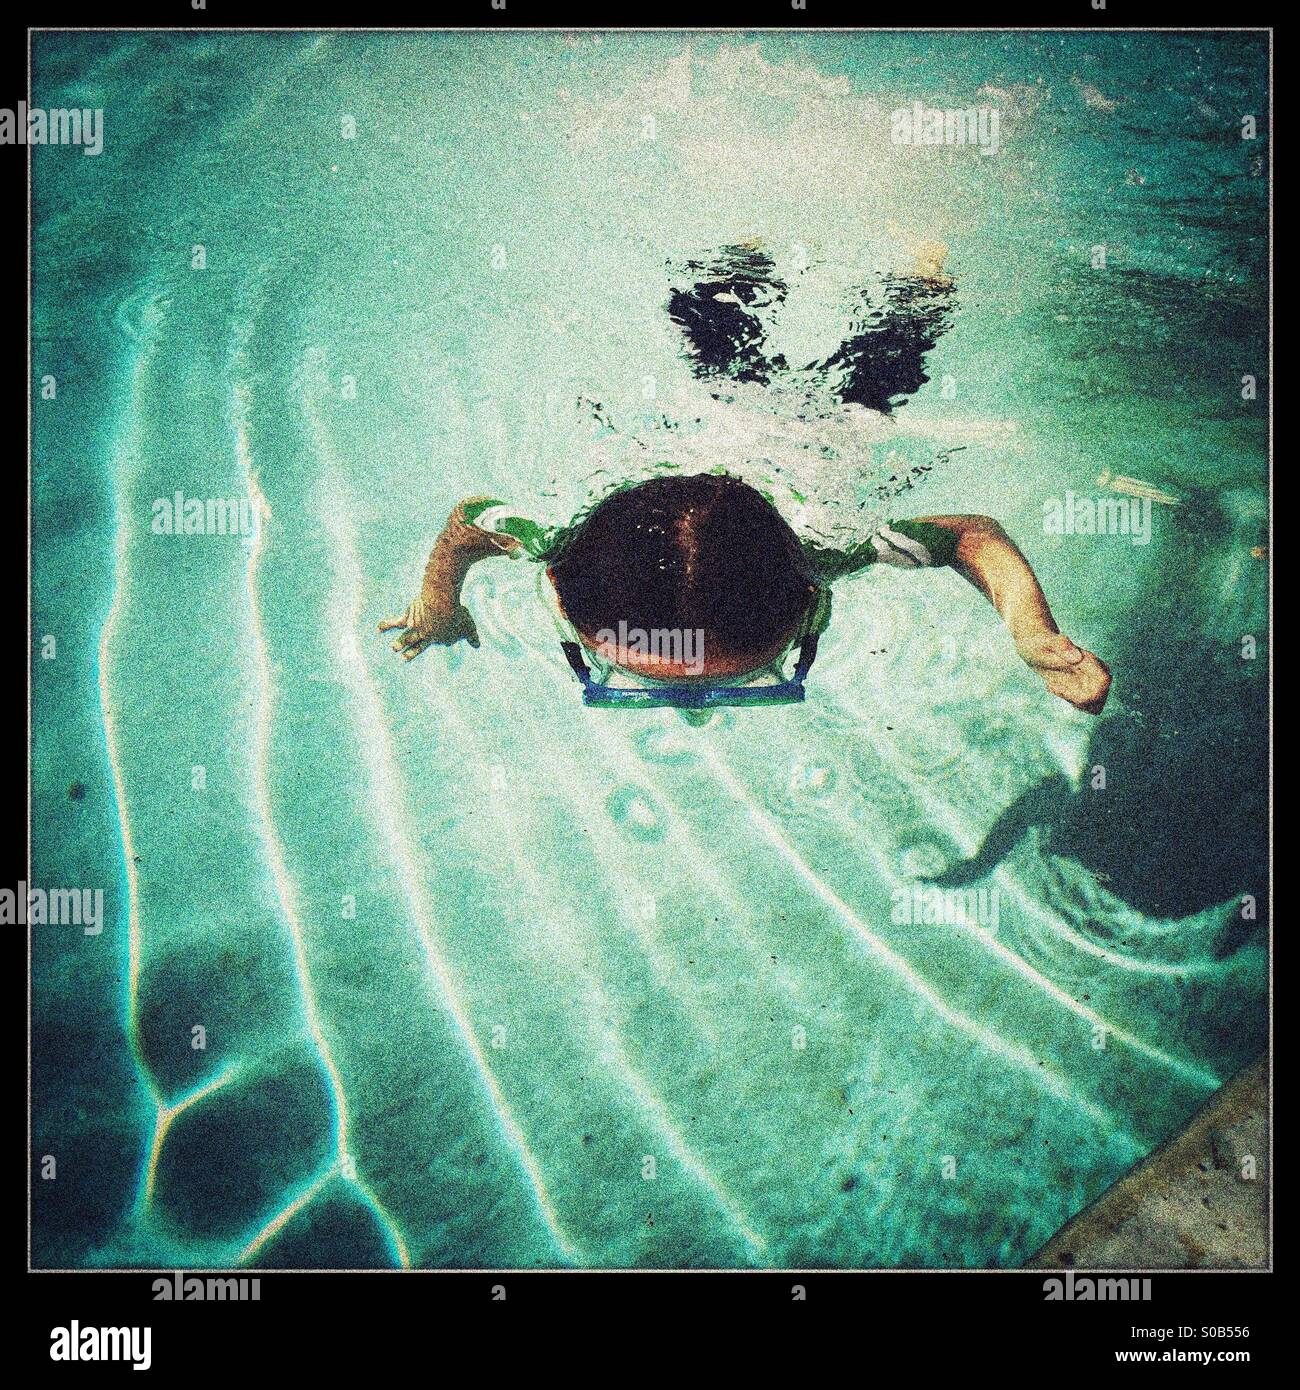 A seven year old boy swims underwater in a swimming pool. - Stock Image